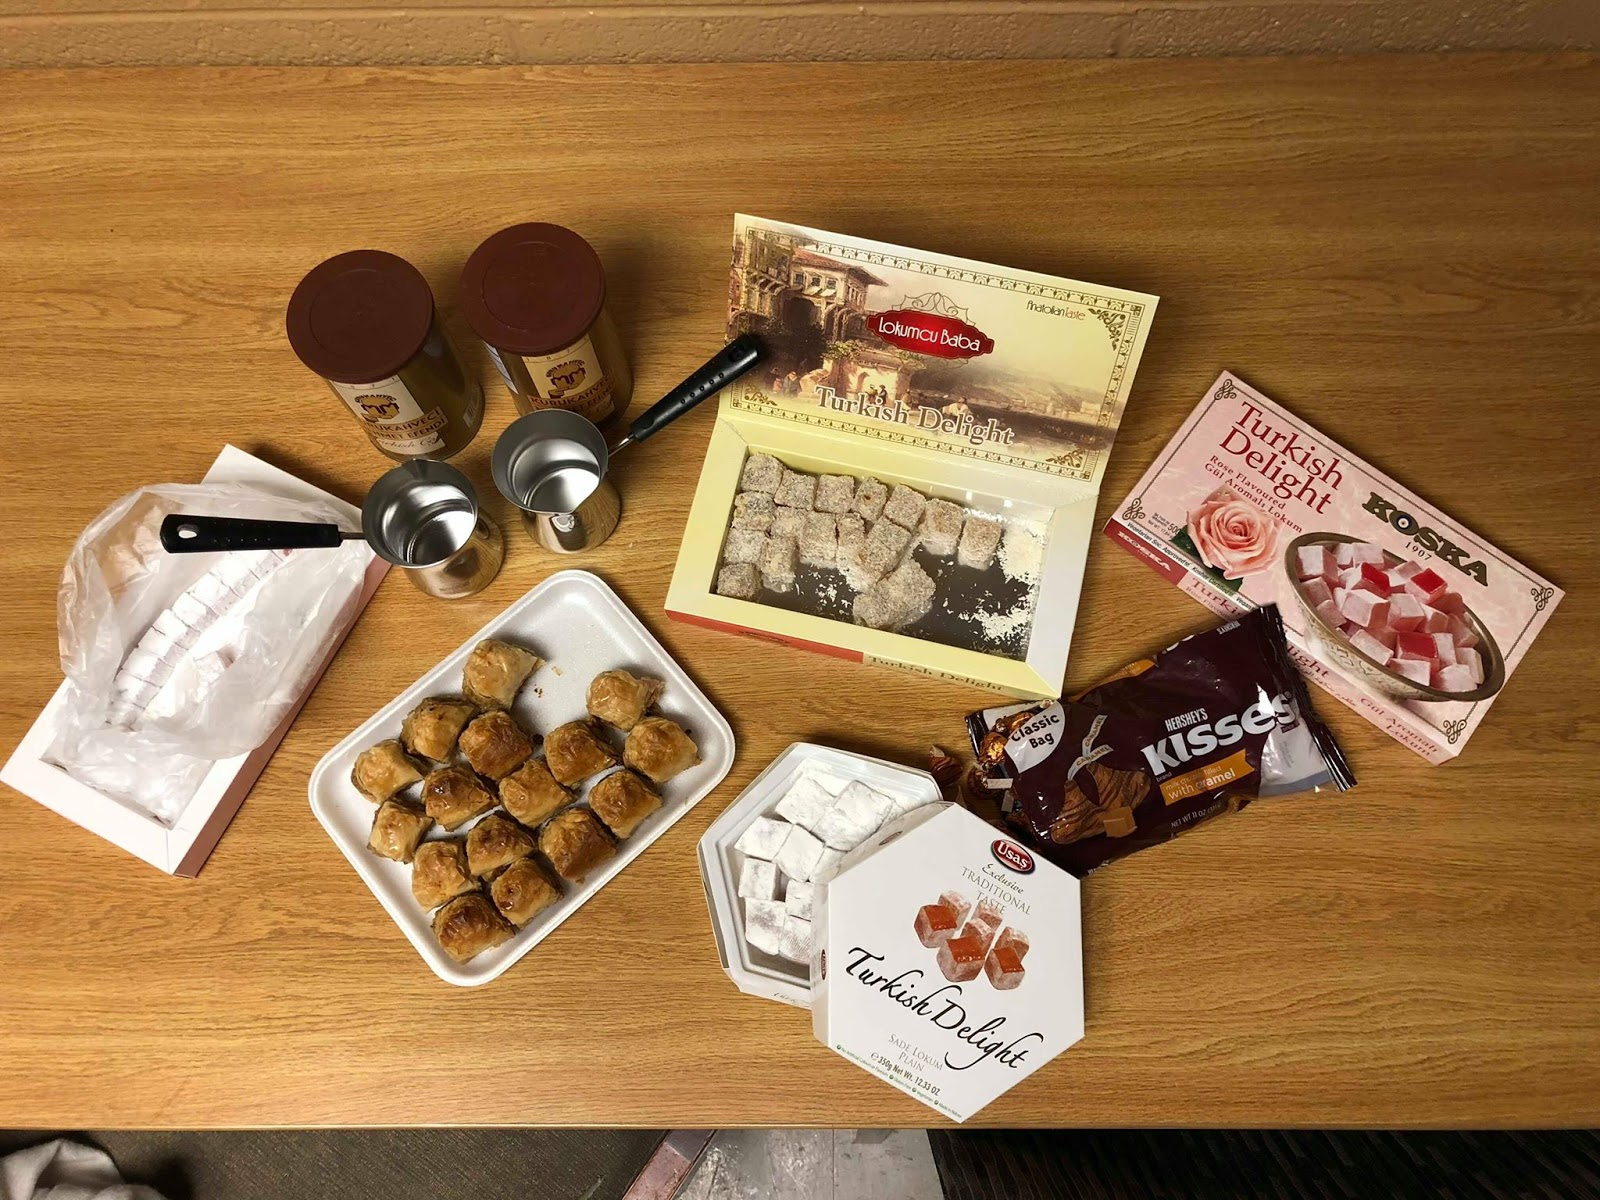 An assortment of Turkish coffee and treats.